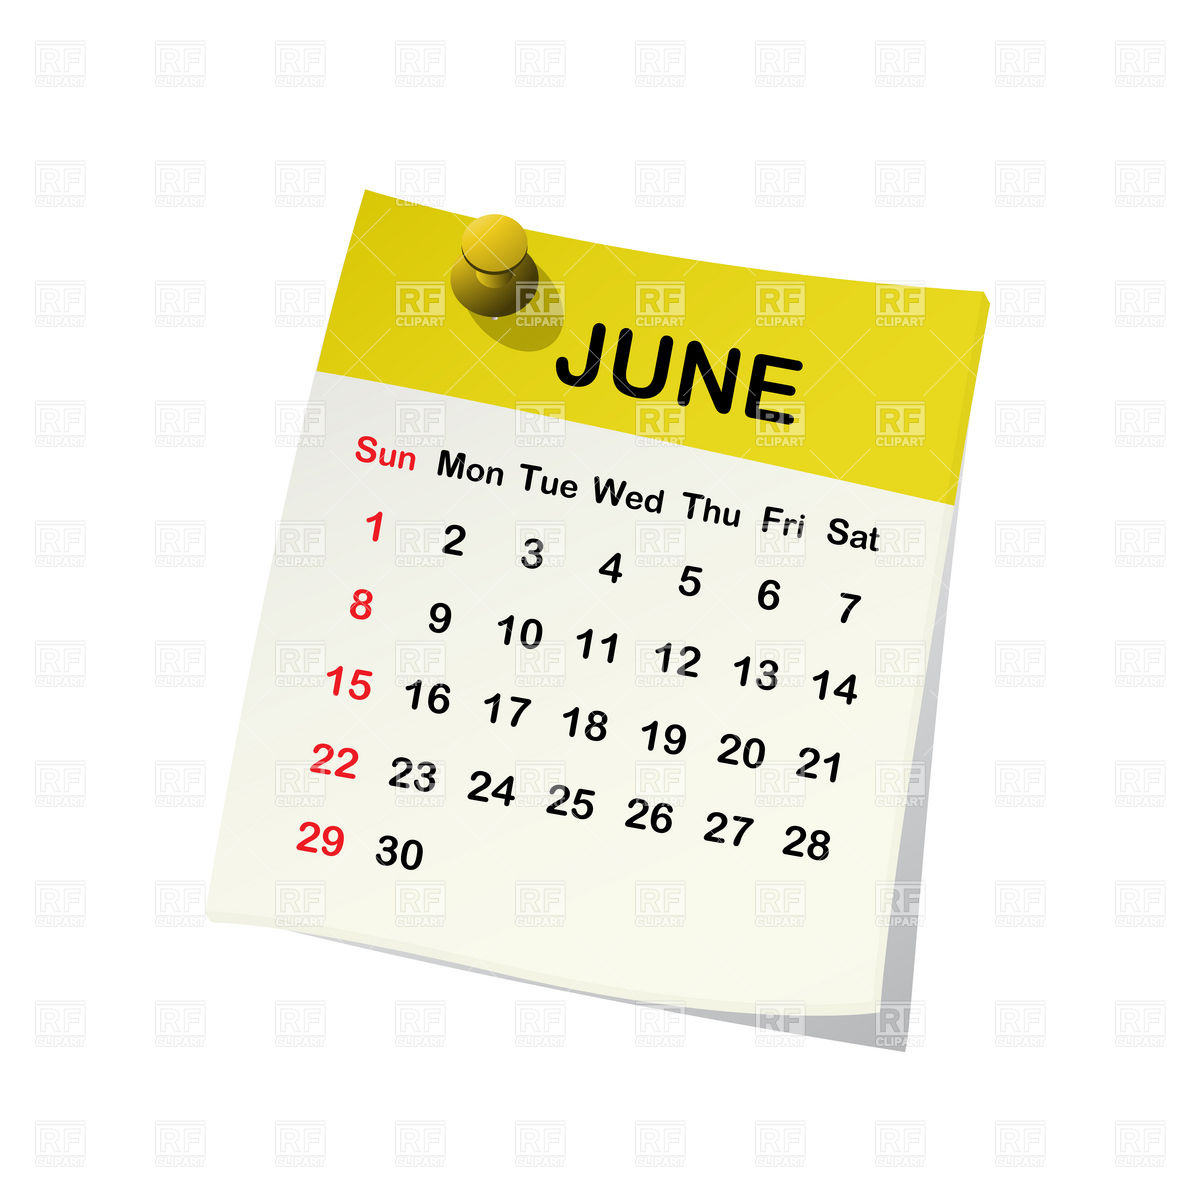 June 2014 Month Calendar Download Royalty Free Vector Clipart  Eps